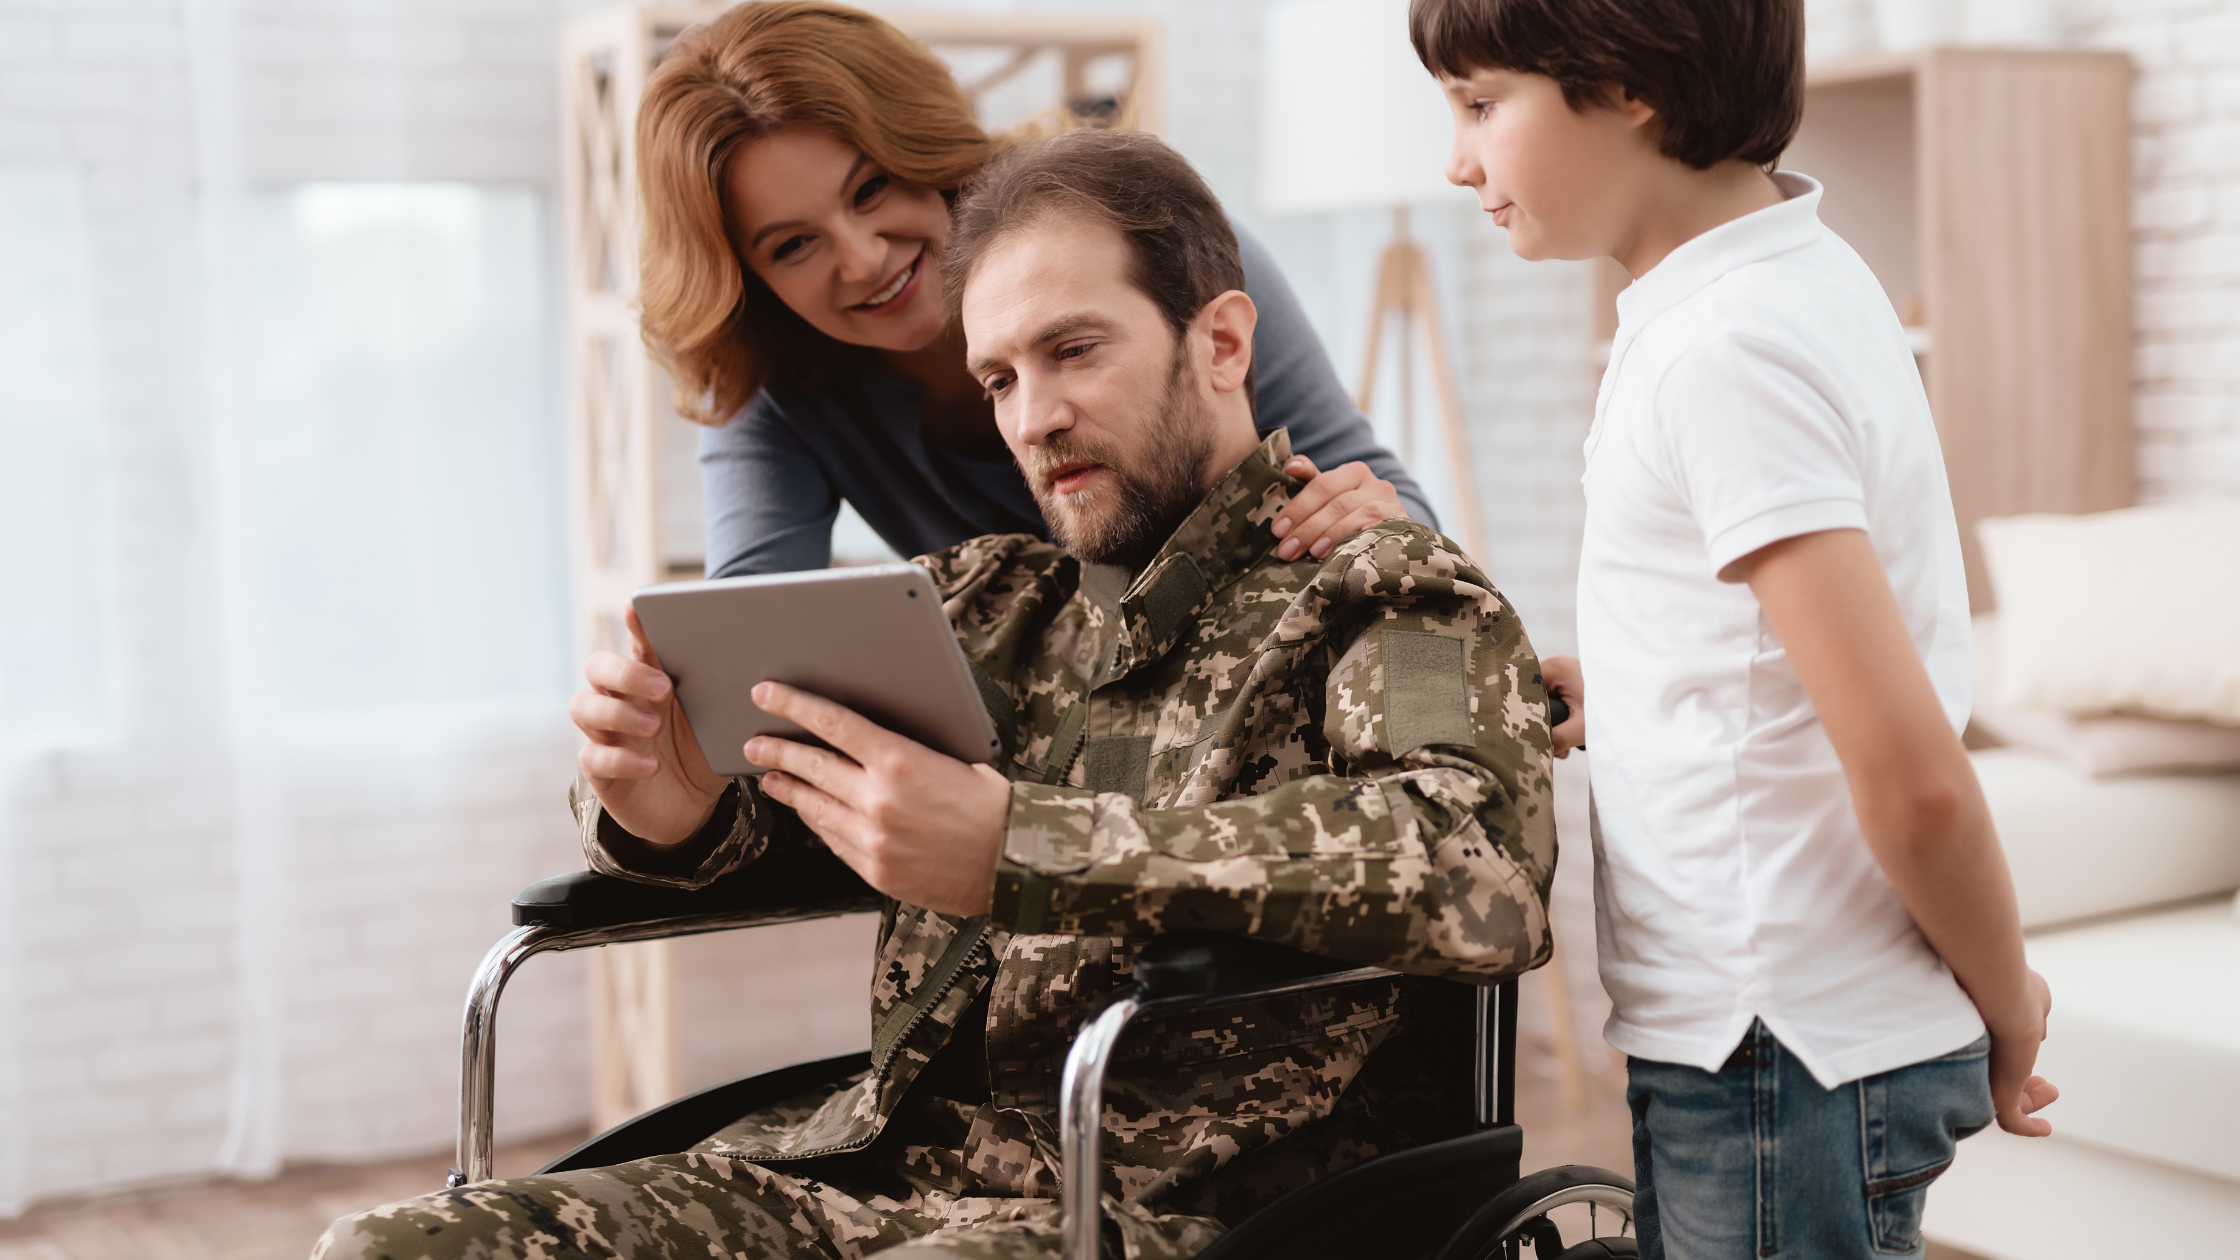 helping veterans during holidays